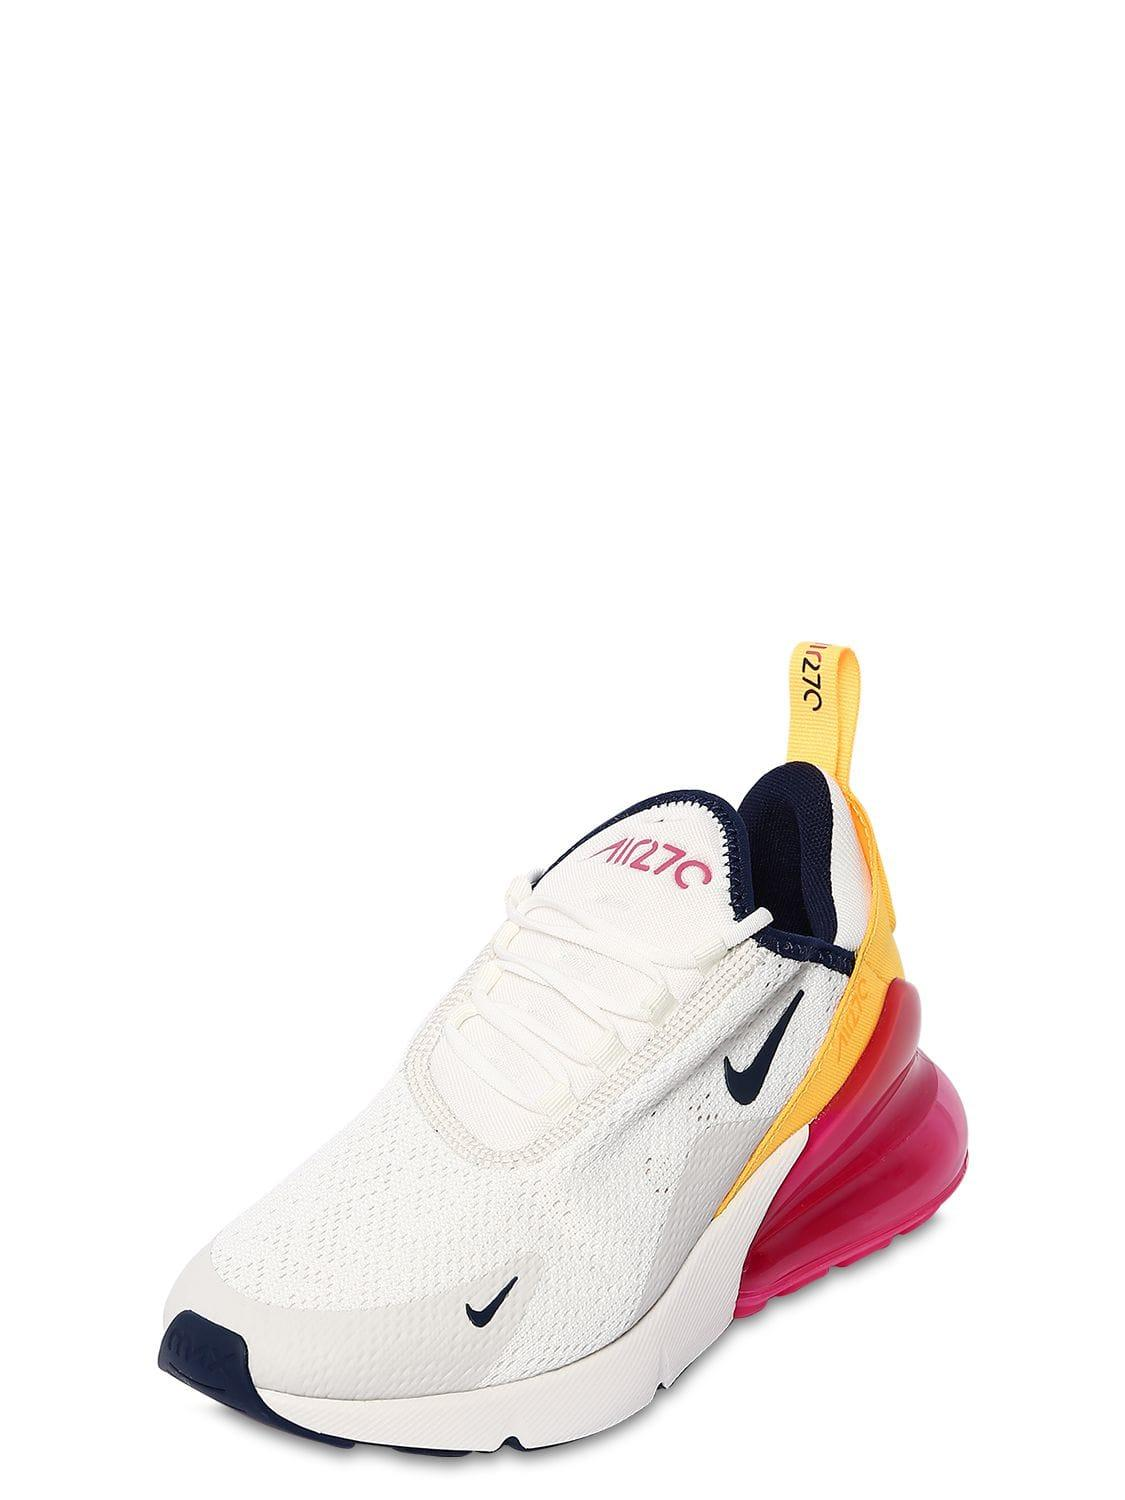 best service 85674 8fd33 Nike - Multicolor Air Max 270 Sneakers - Lyst. View fullscreen